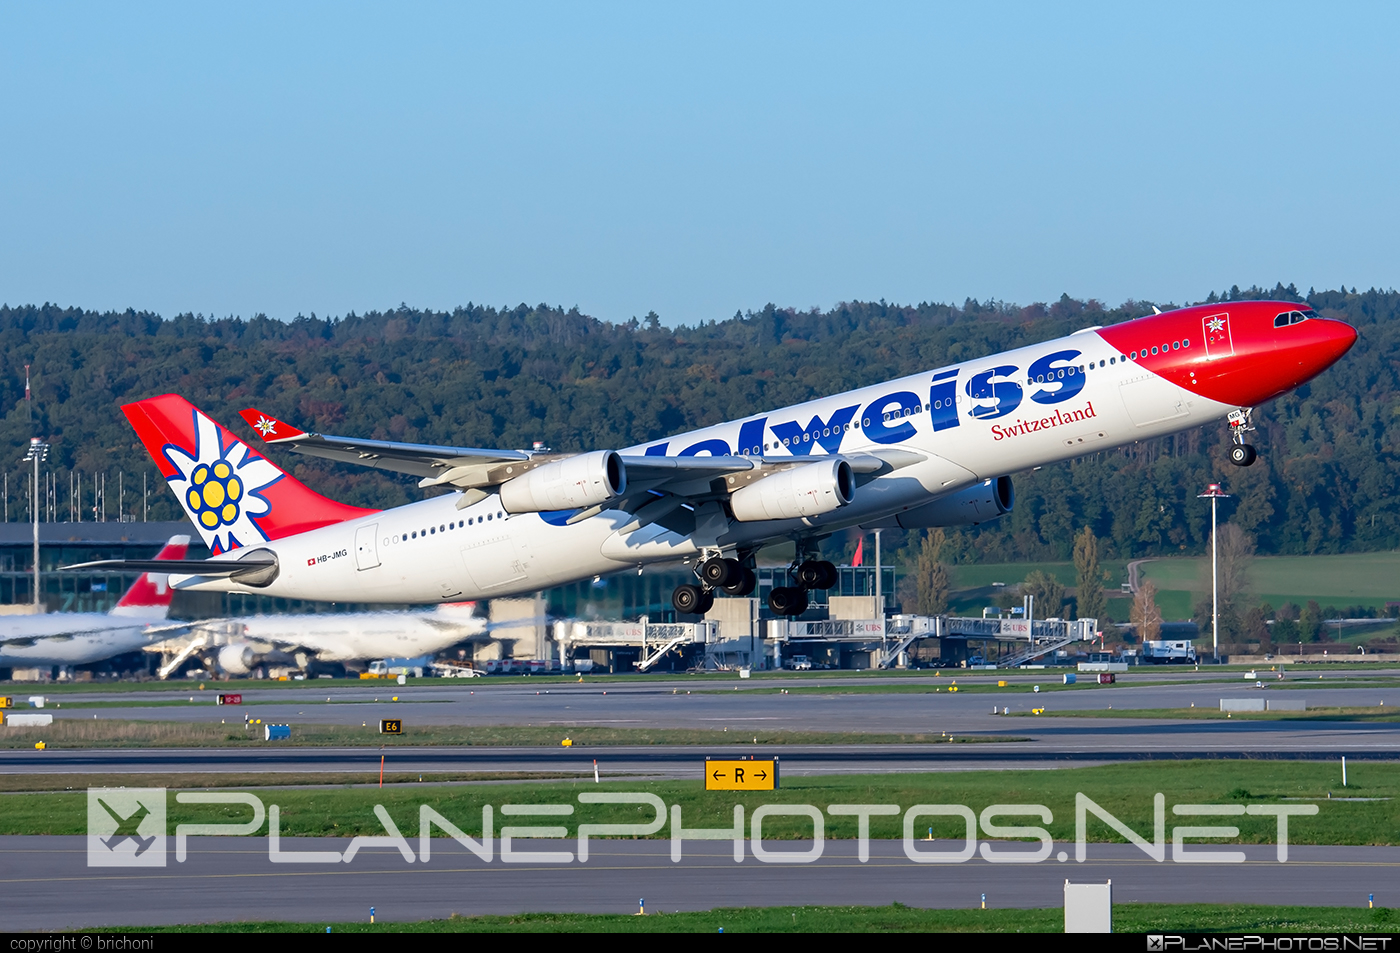 Airbus A340-313 - HB-JMG operated by Edelweiss Air #a340 #a340family #airbus #airbus340